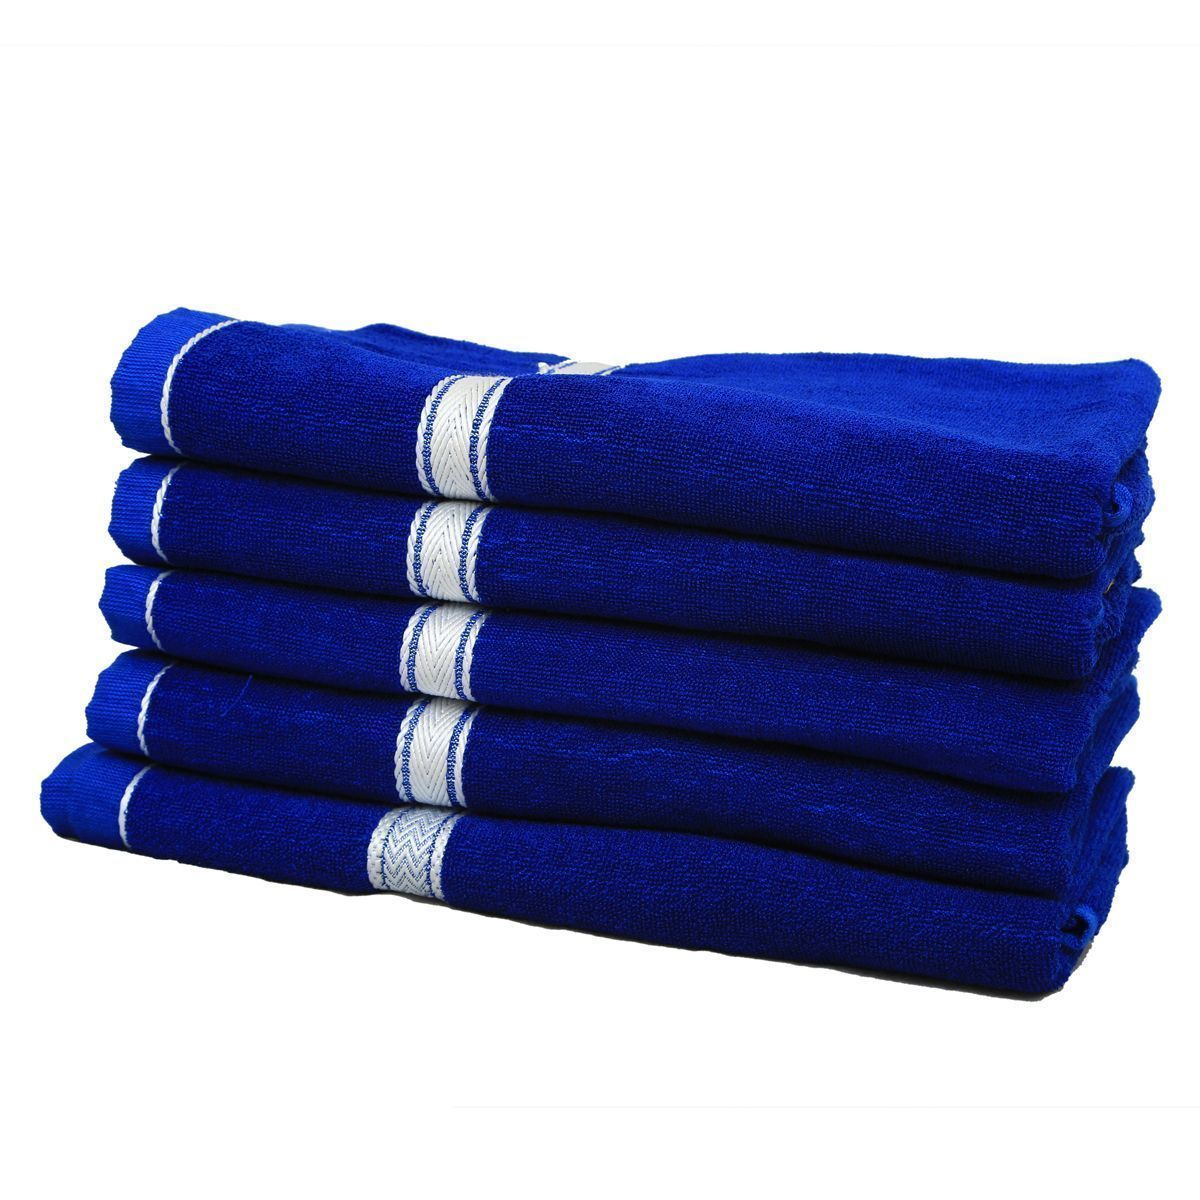 Kuber Industries Soft Terry Full Size Men's Bath Towel  Set Of 5 Pcs GSM-400 (30*60 Inches ) Royal Blue -KU7